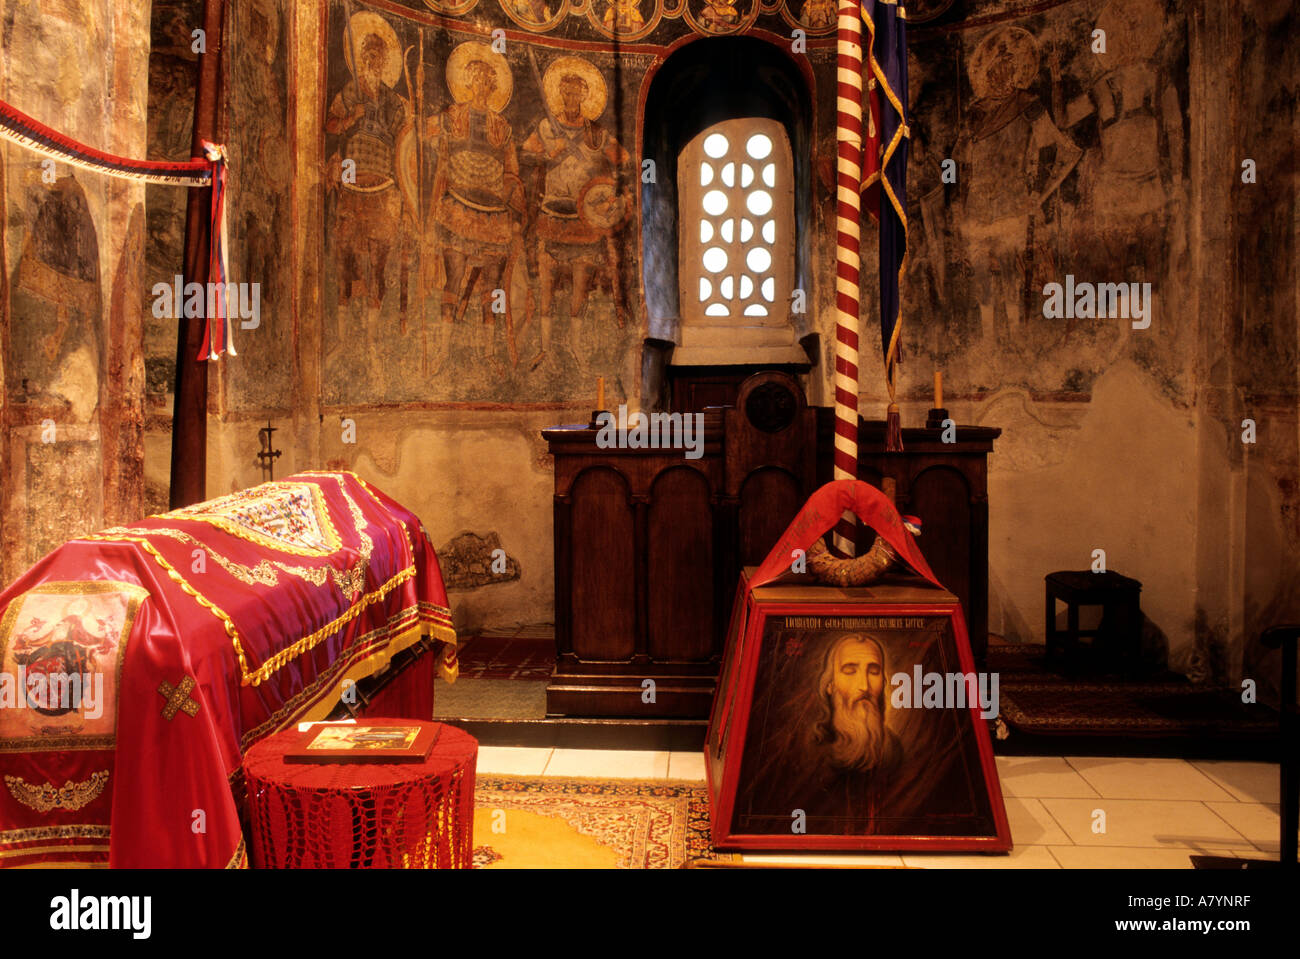 Serbia, tomb of prince Lazard, Serb hero of the wars against the ottomans of the 14th century,  monastery finds Stock Photo